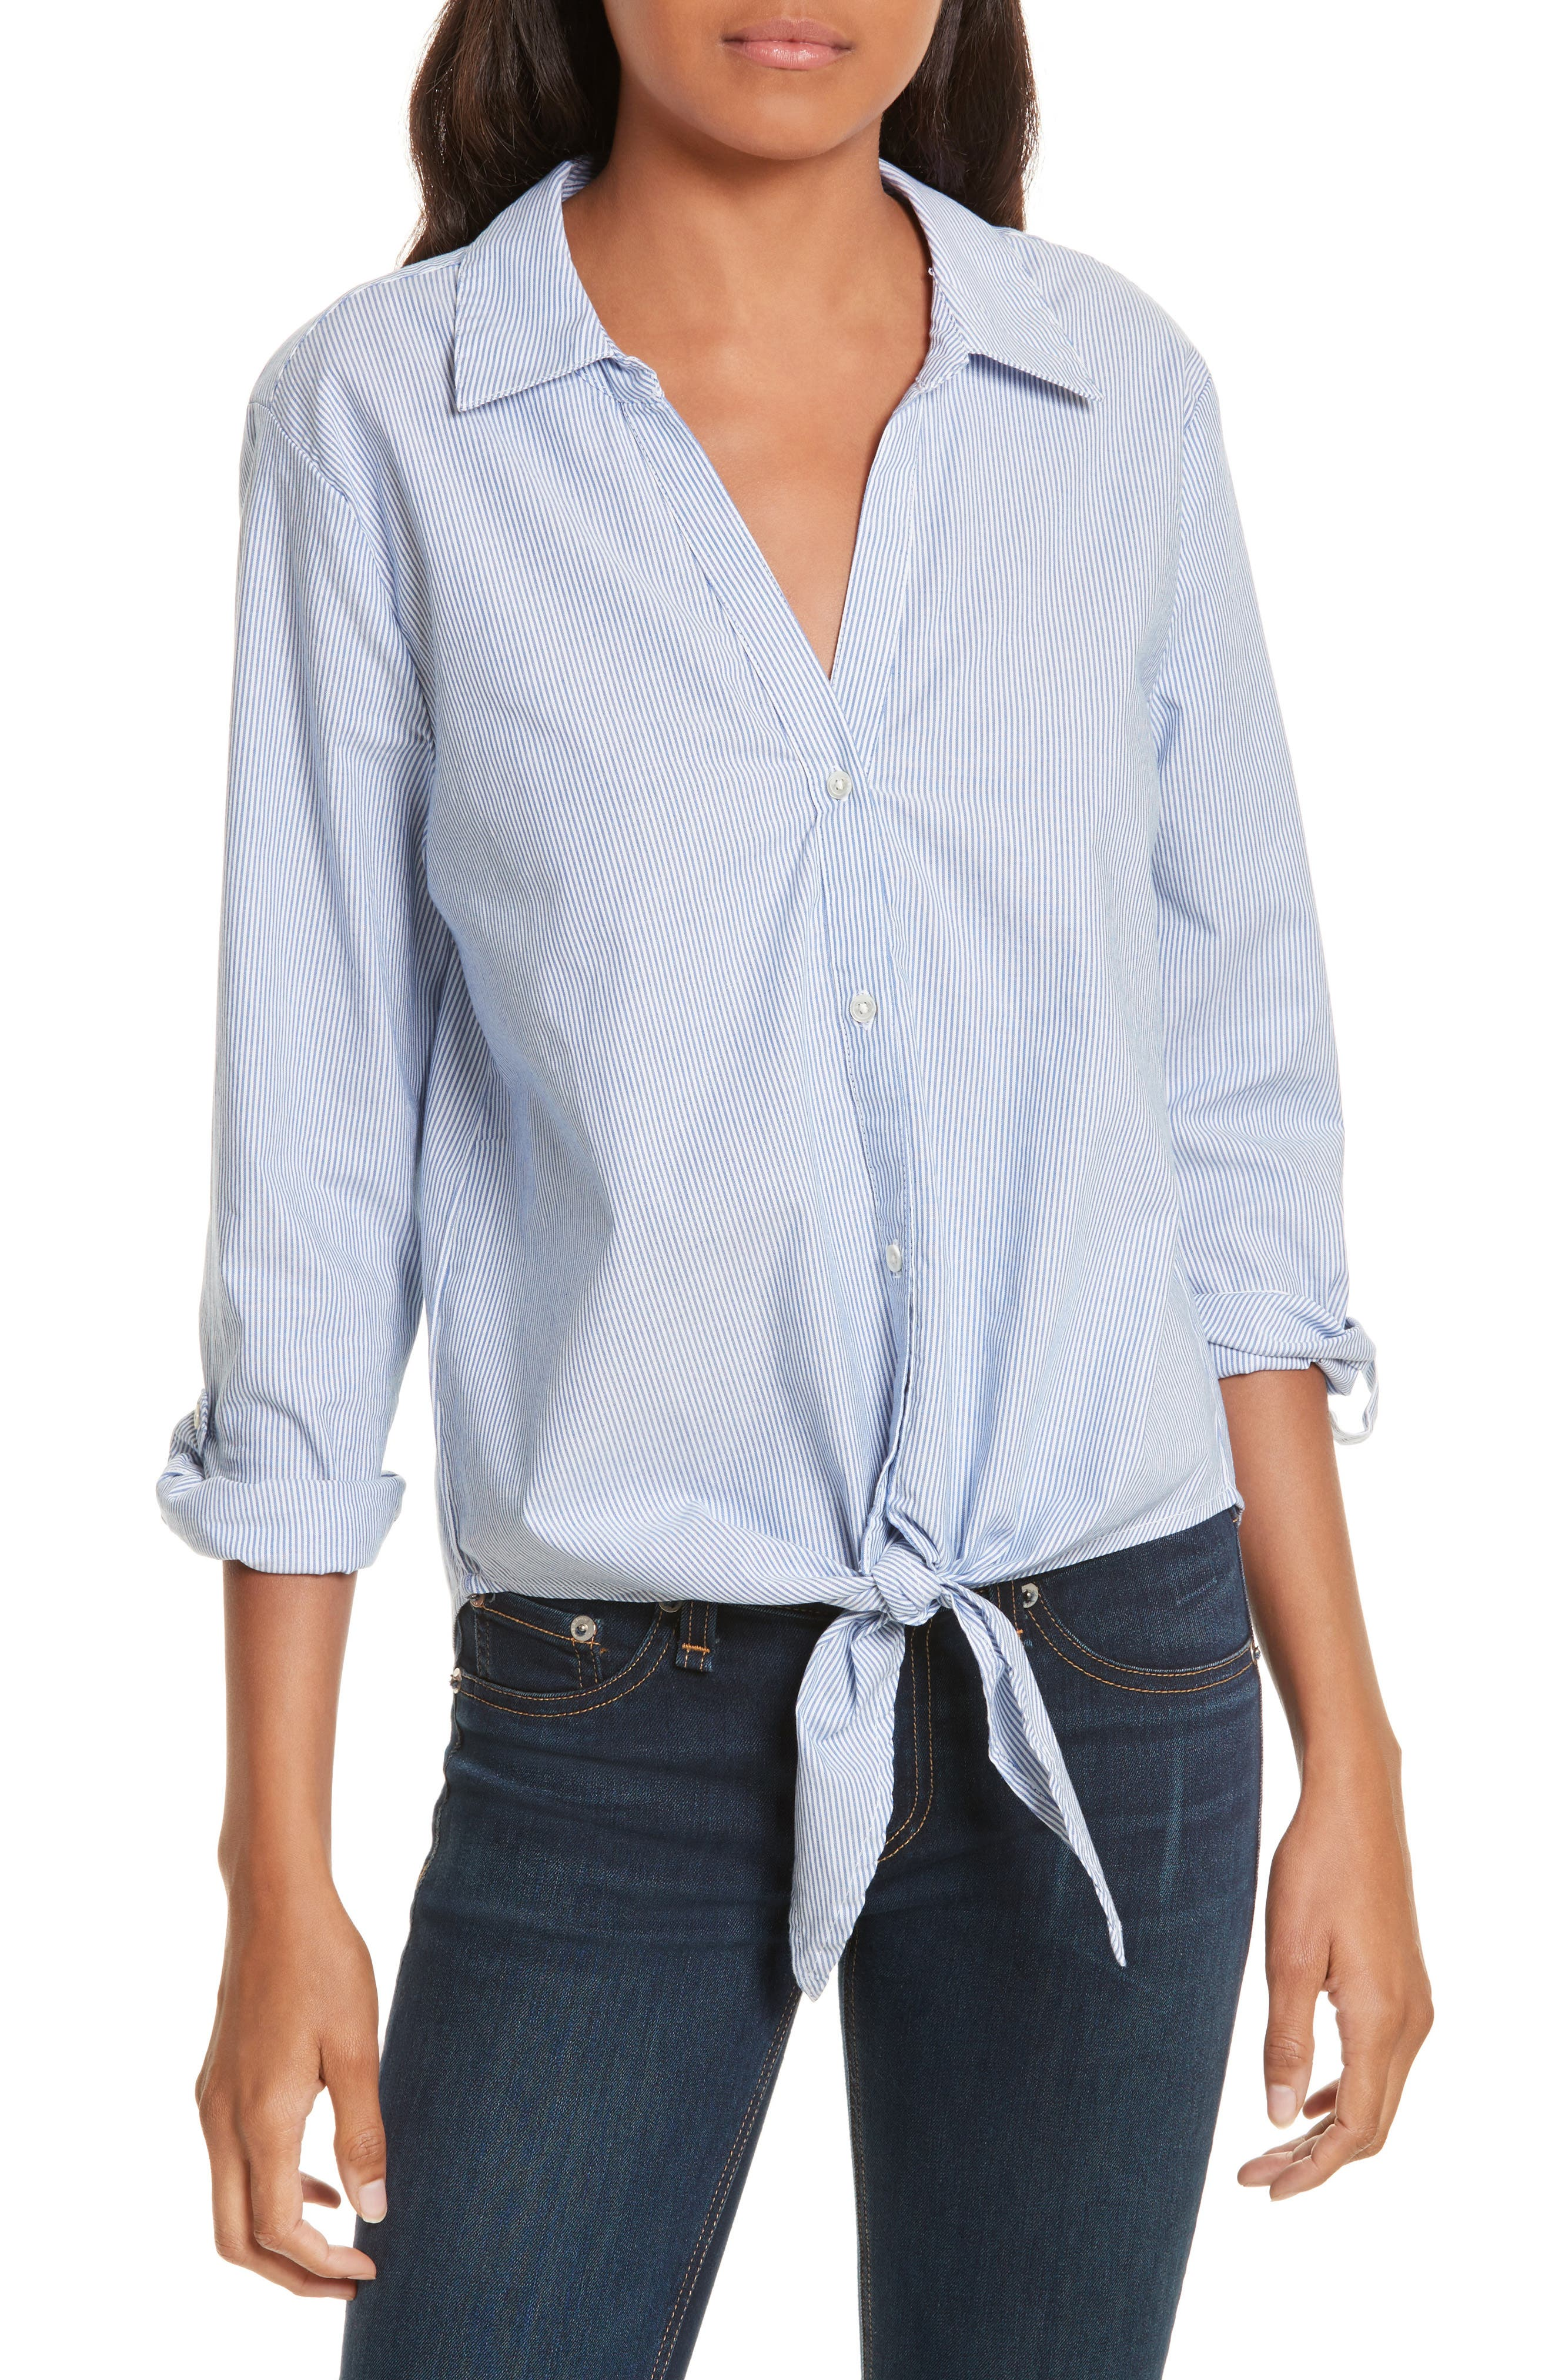 Soft Joie Crysta Tie Front Shirt